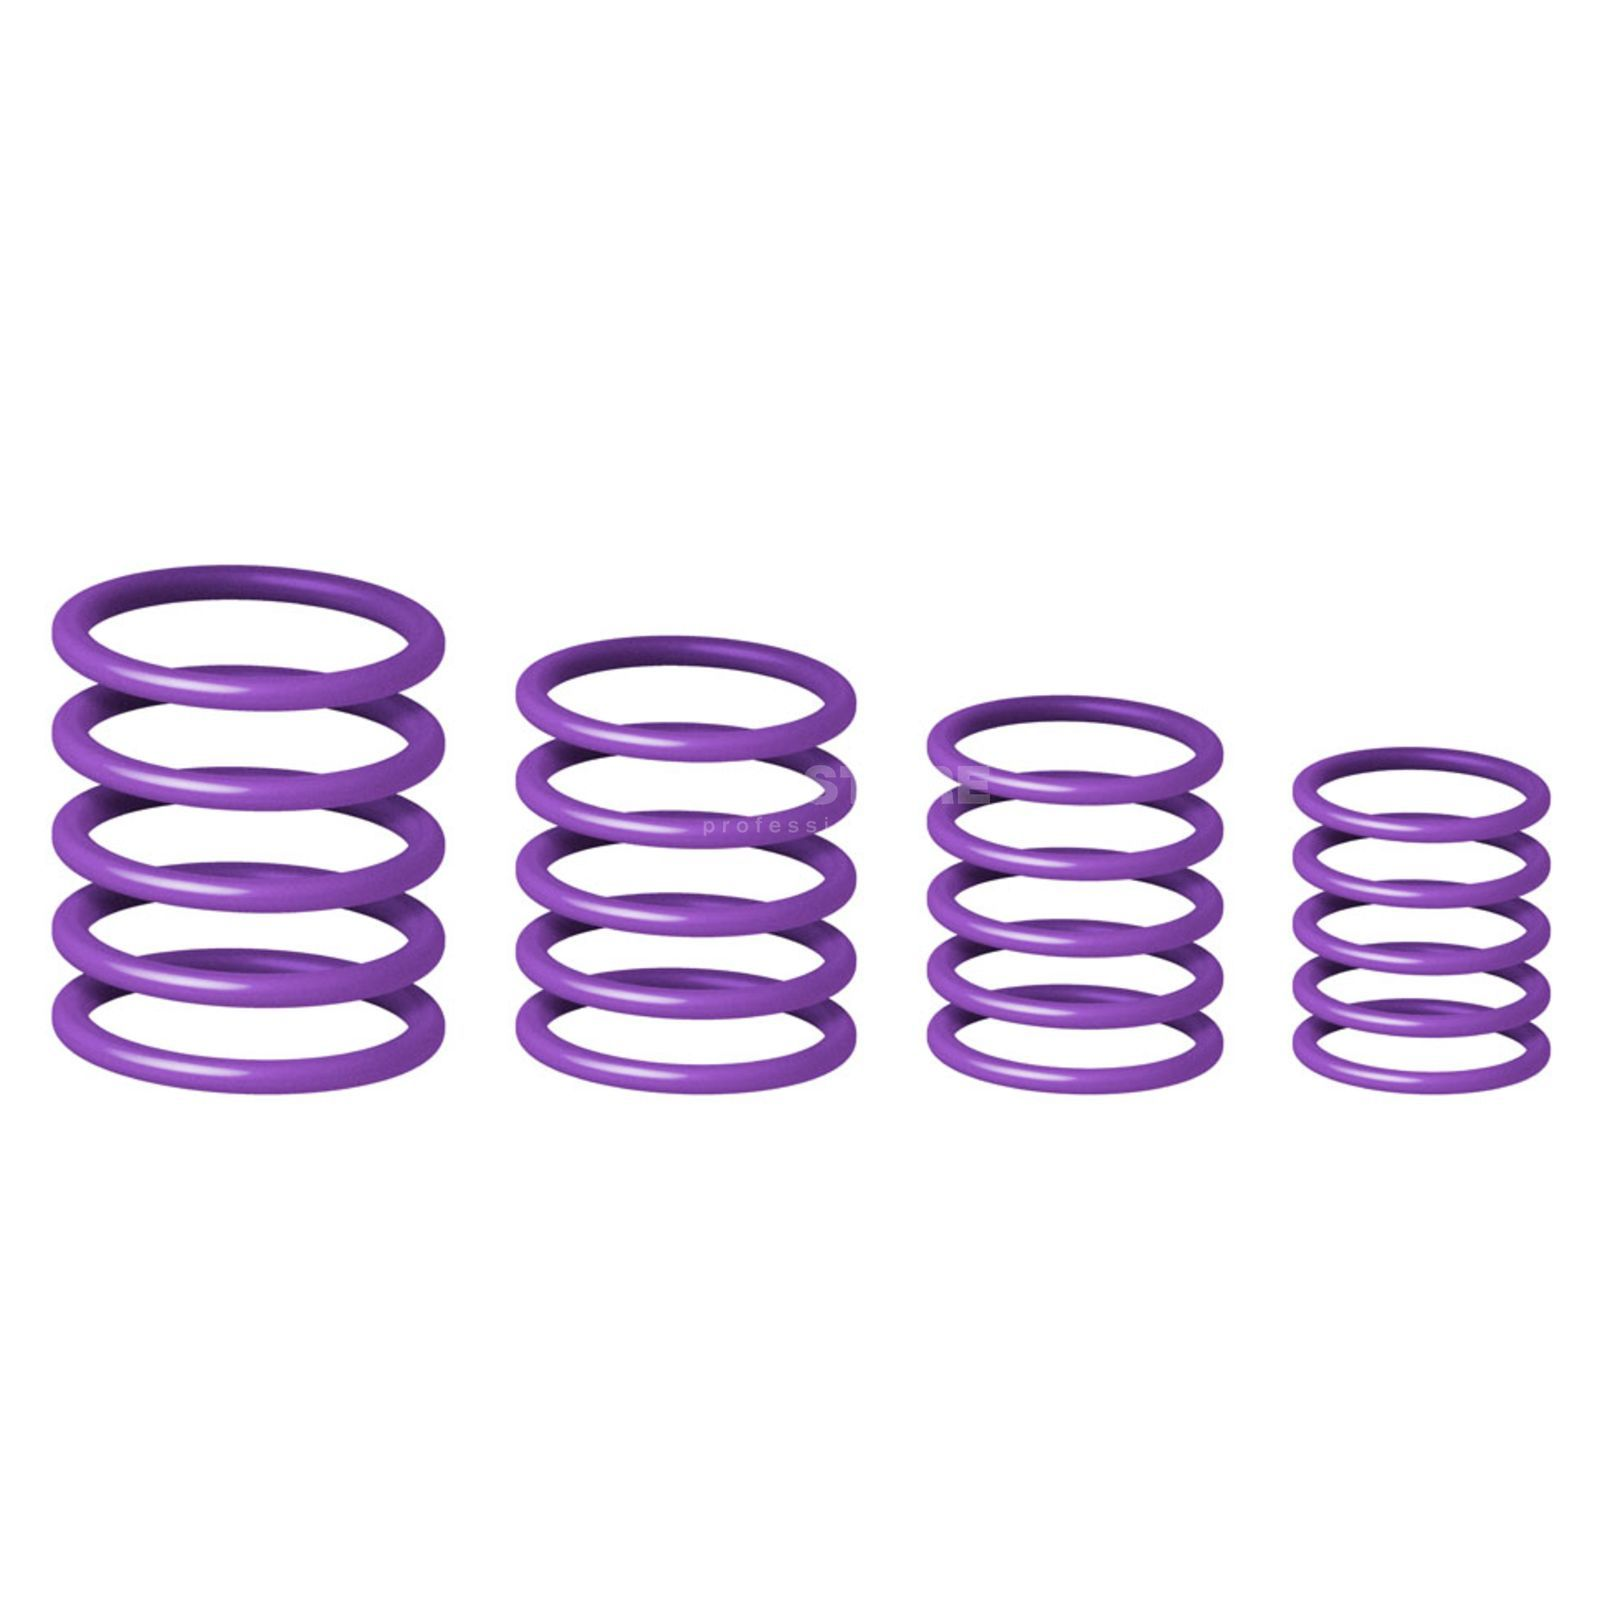 Gravity RP 5555 PPL 1 Gravity Ring Pack, Power Purple Product Image